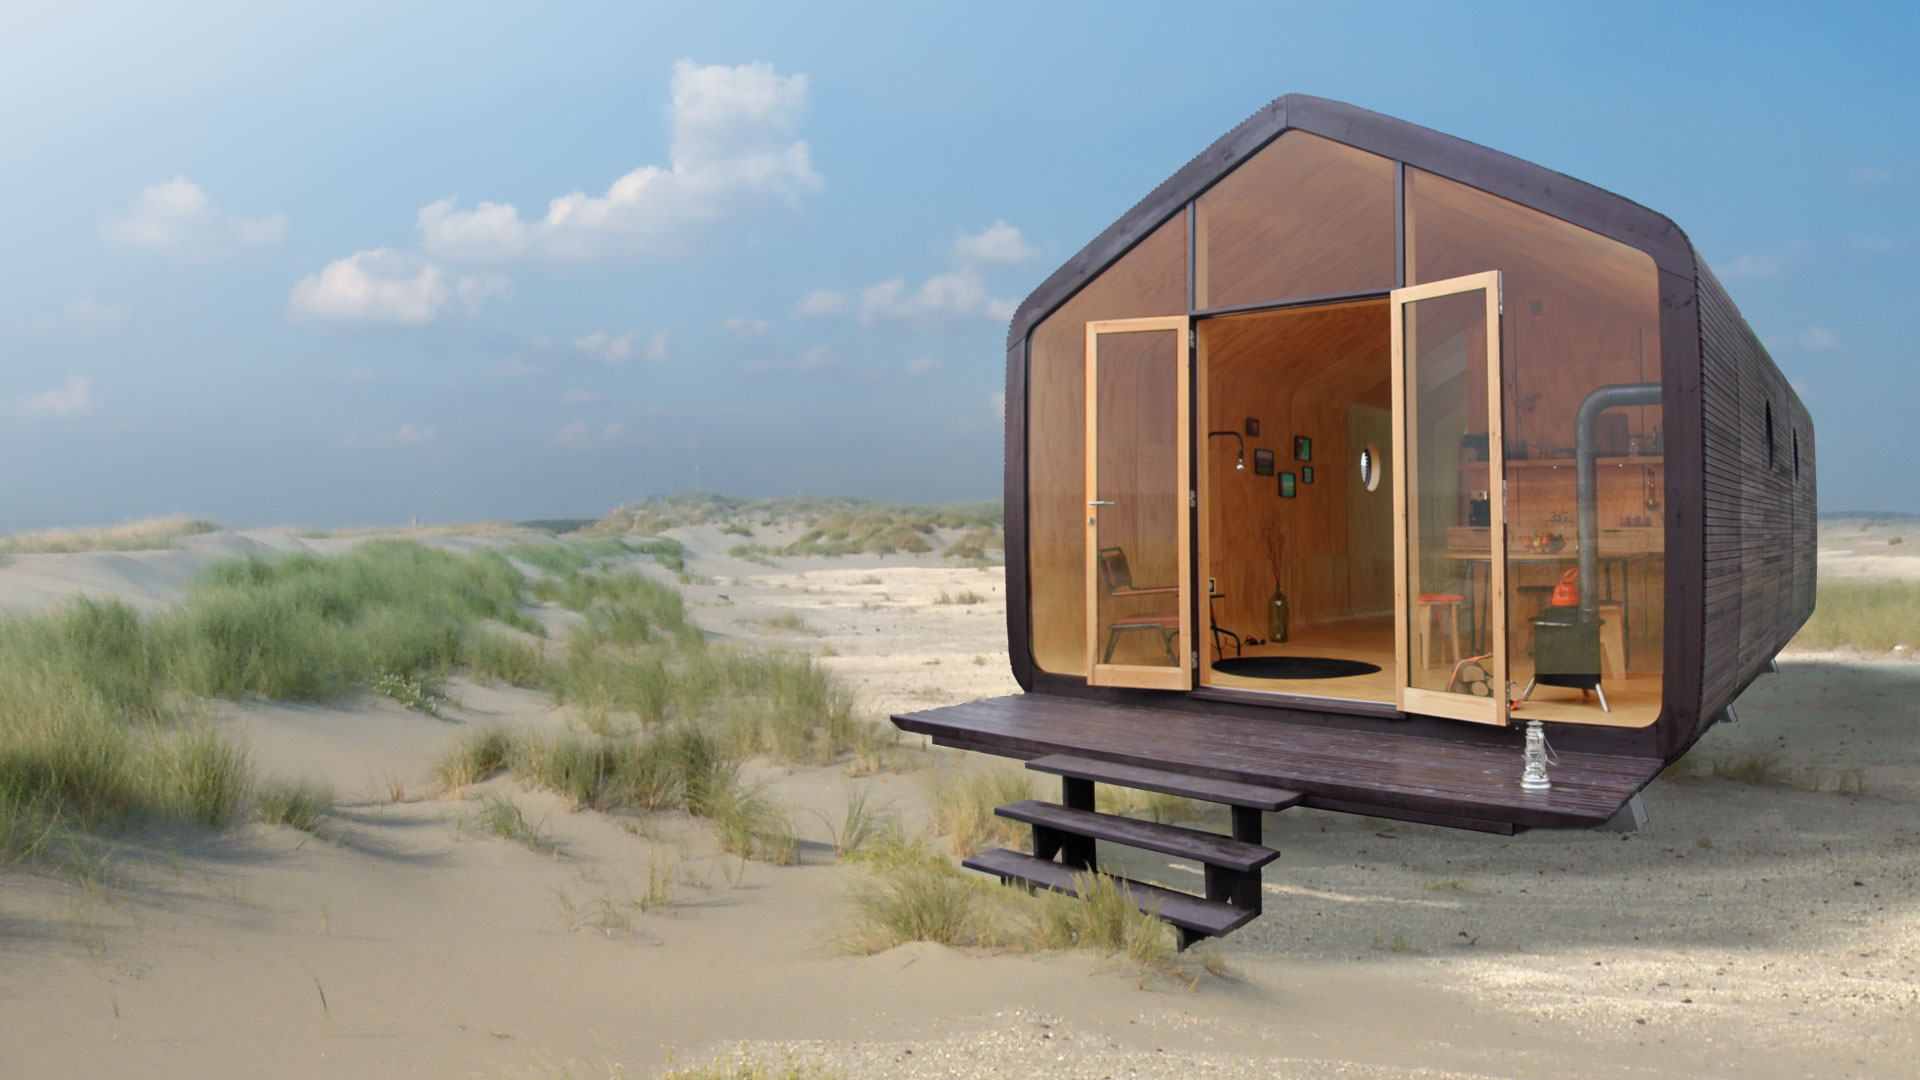 sustainable-wikkelhouse-3 Sustainable Sustainable cardboard house is ready in 24 hours and lasts 100 years Sustainable wikkelhouse 3